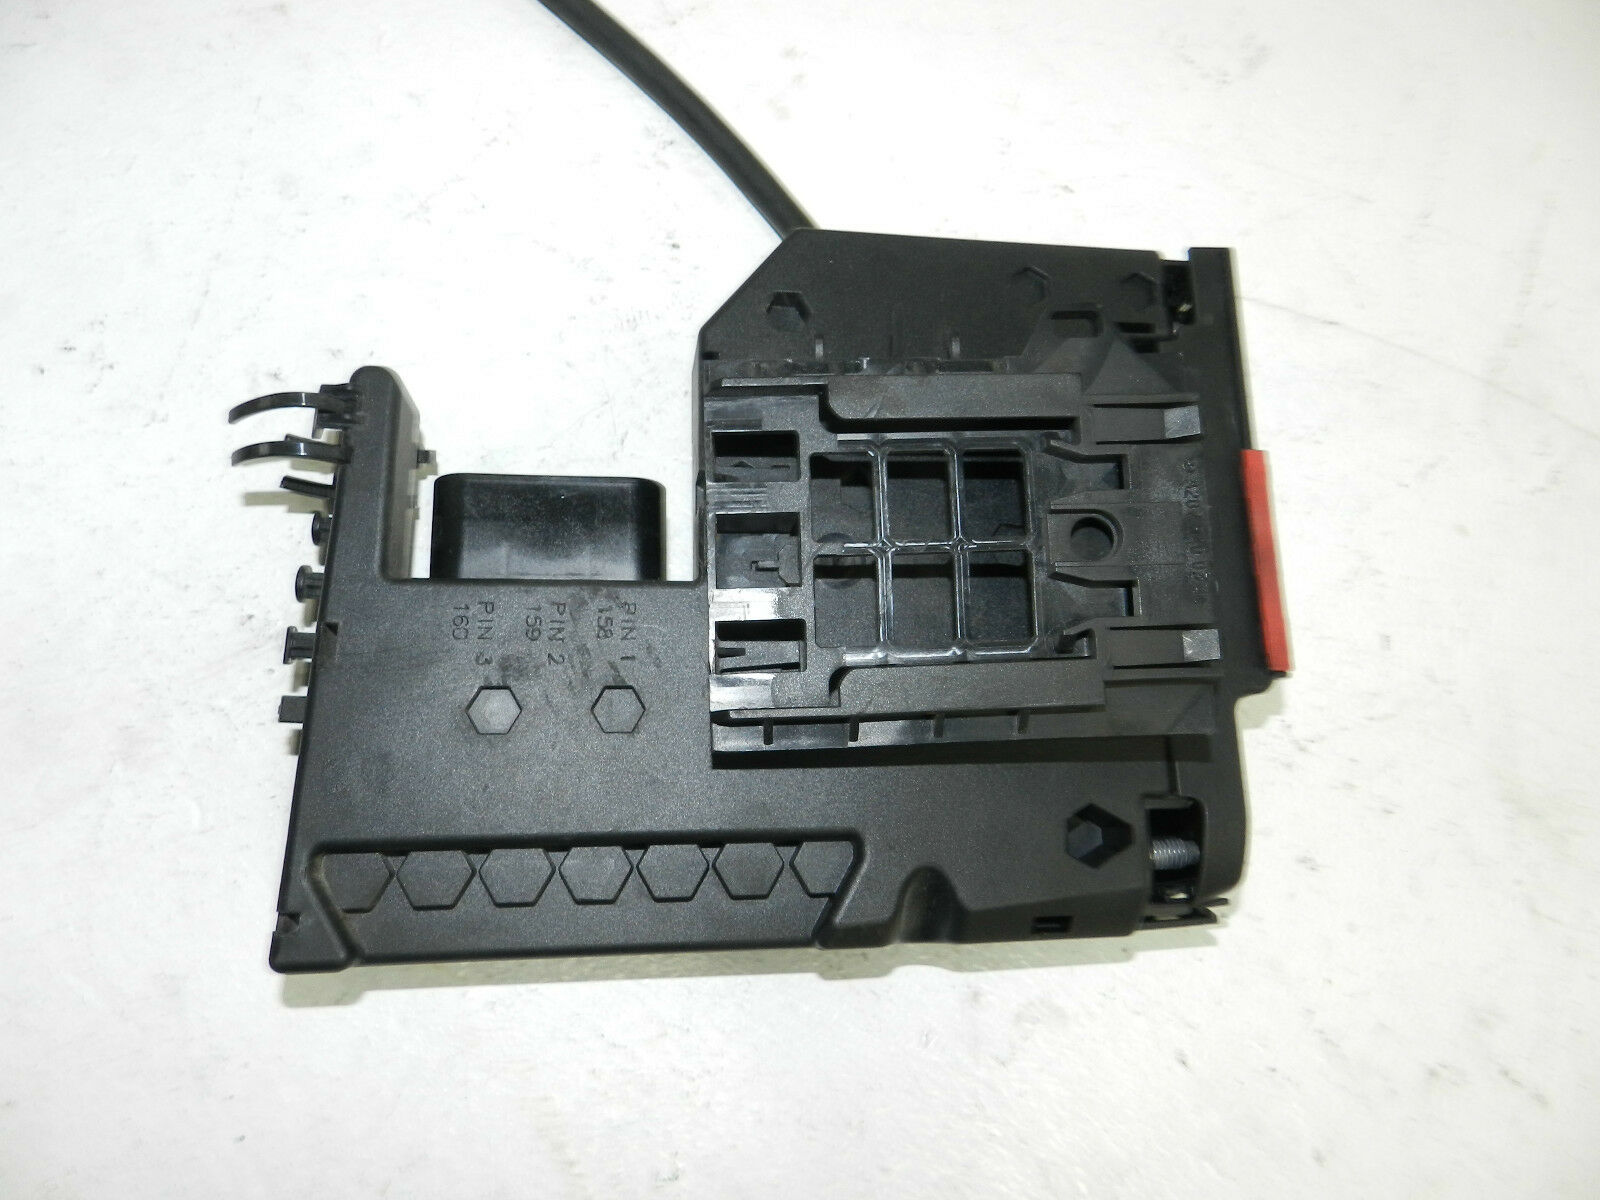 Mercedes C Class W204 C220 Cdi Fuse Box Module A2075400340 Ref2706 1 of  7Only 1 available ...